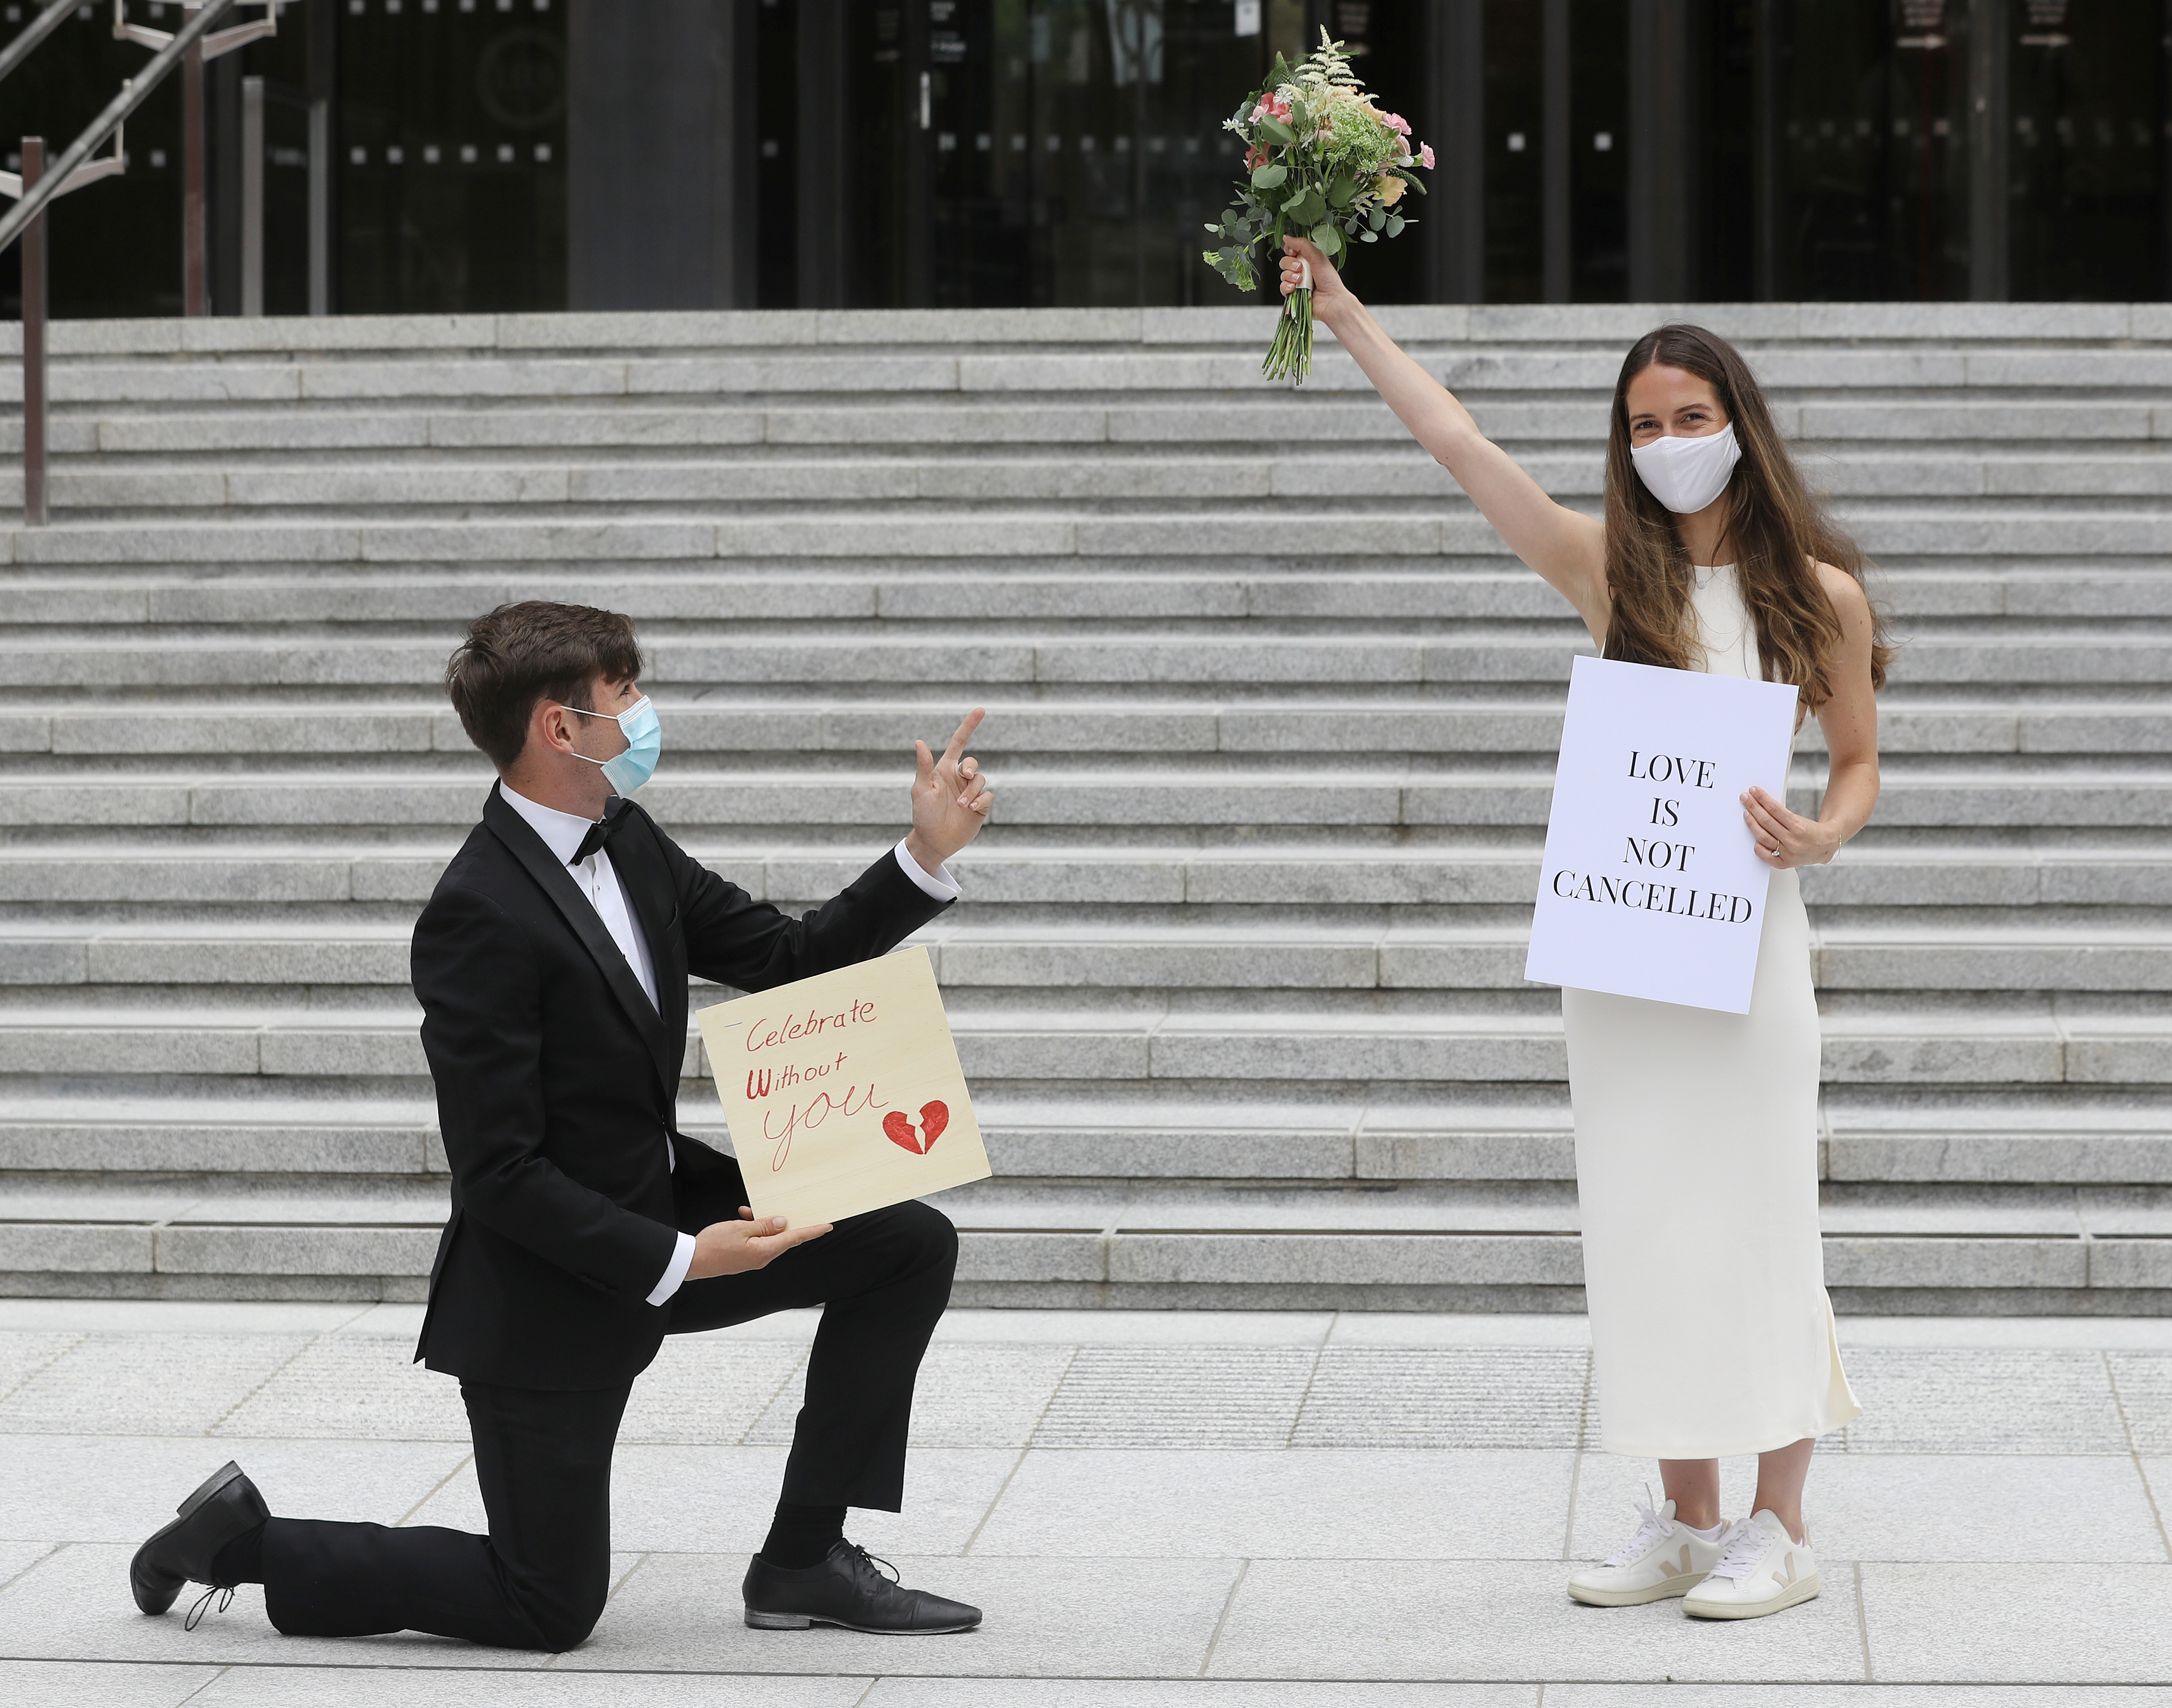 Tony Barry and Anna Killeen hold up signs at a protest march to Government Buildings in a bid to allow up to 100 guests to attend weddings this year in Dublin, Ireland, July 27, 2021. REUTERS/Lorraine O'Sullivan